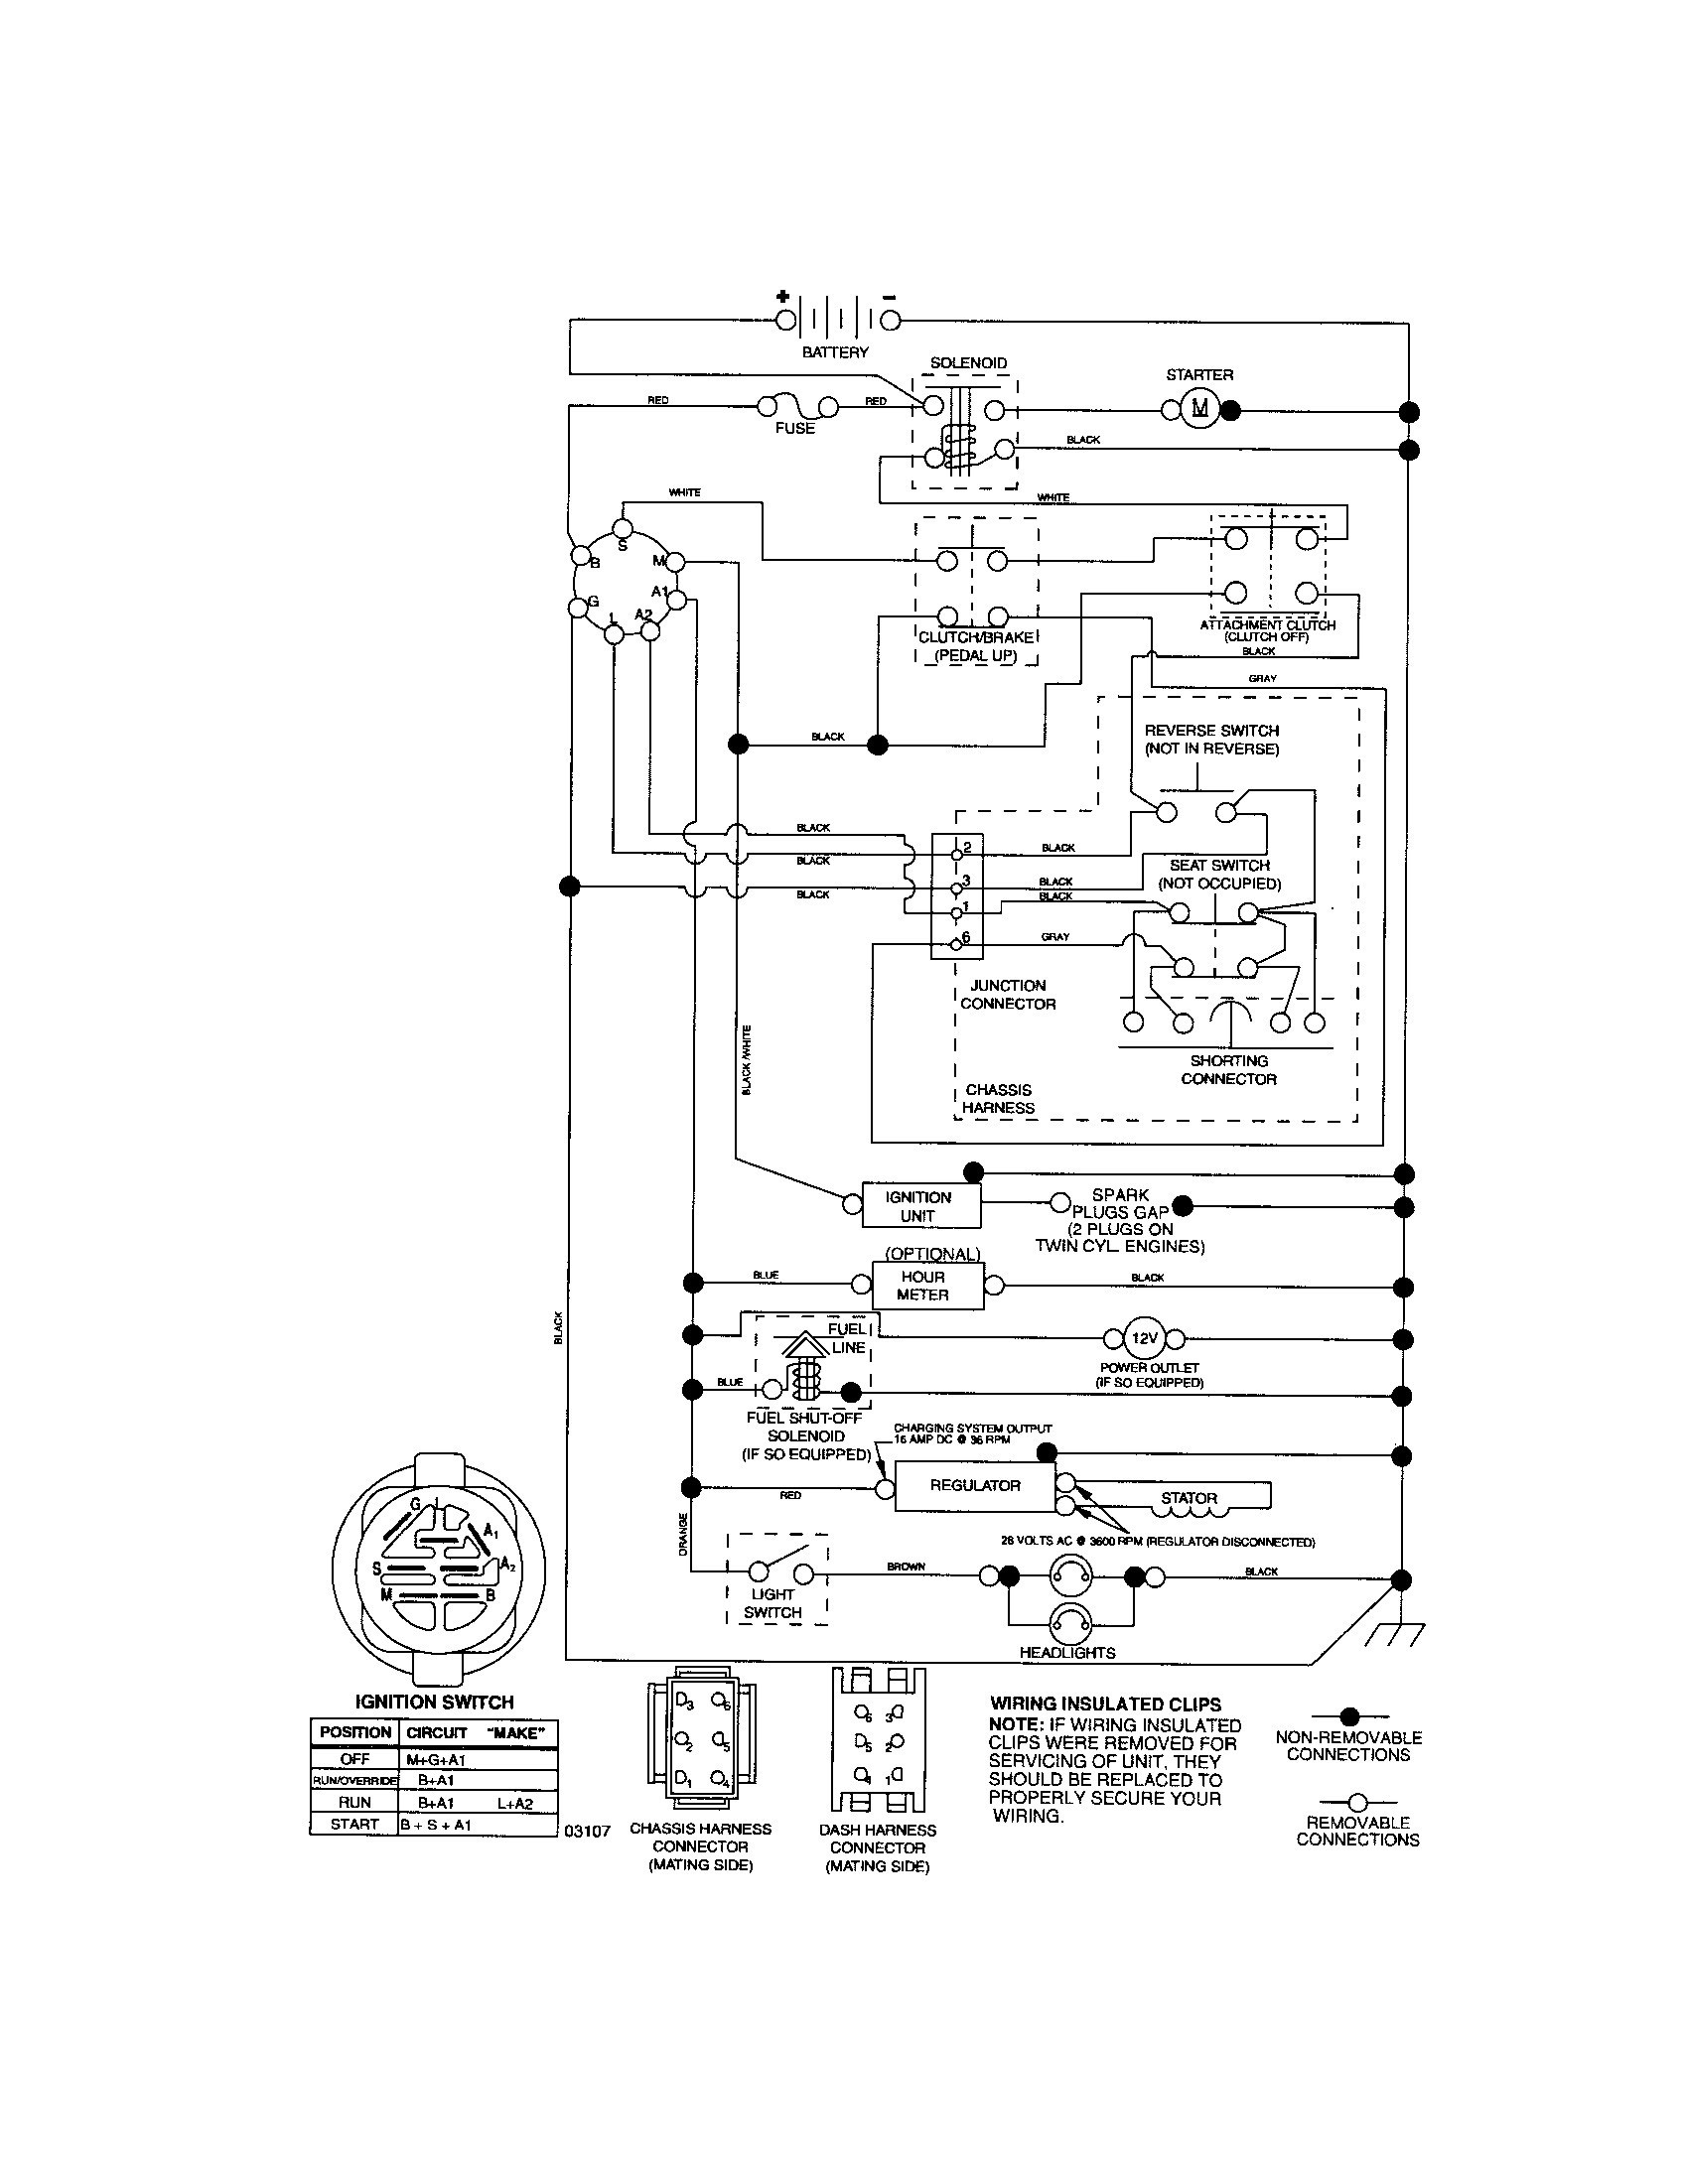 BOLENS SCHEMATICS  Auto Electrical    Wiring       Diagram